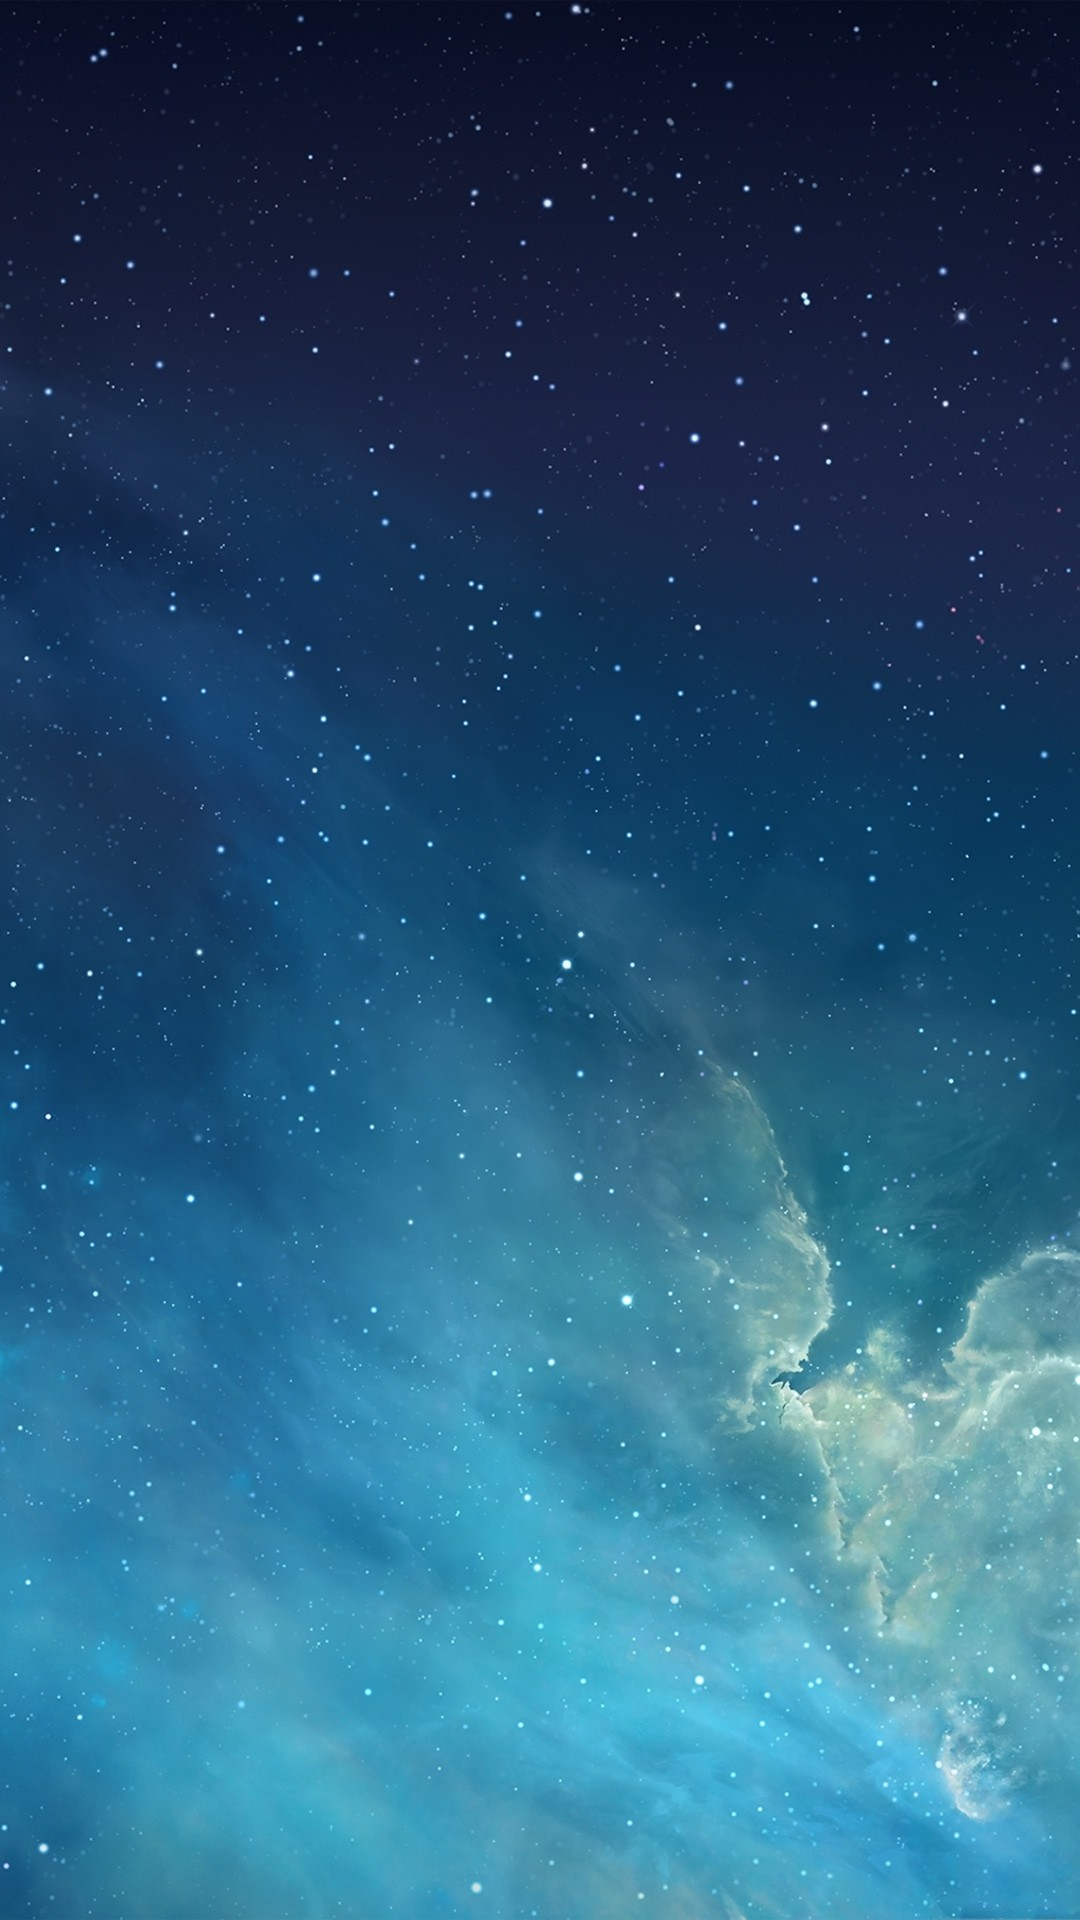 Animated Wallpaper for iPhone 4S (62+ images)